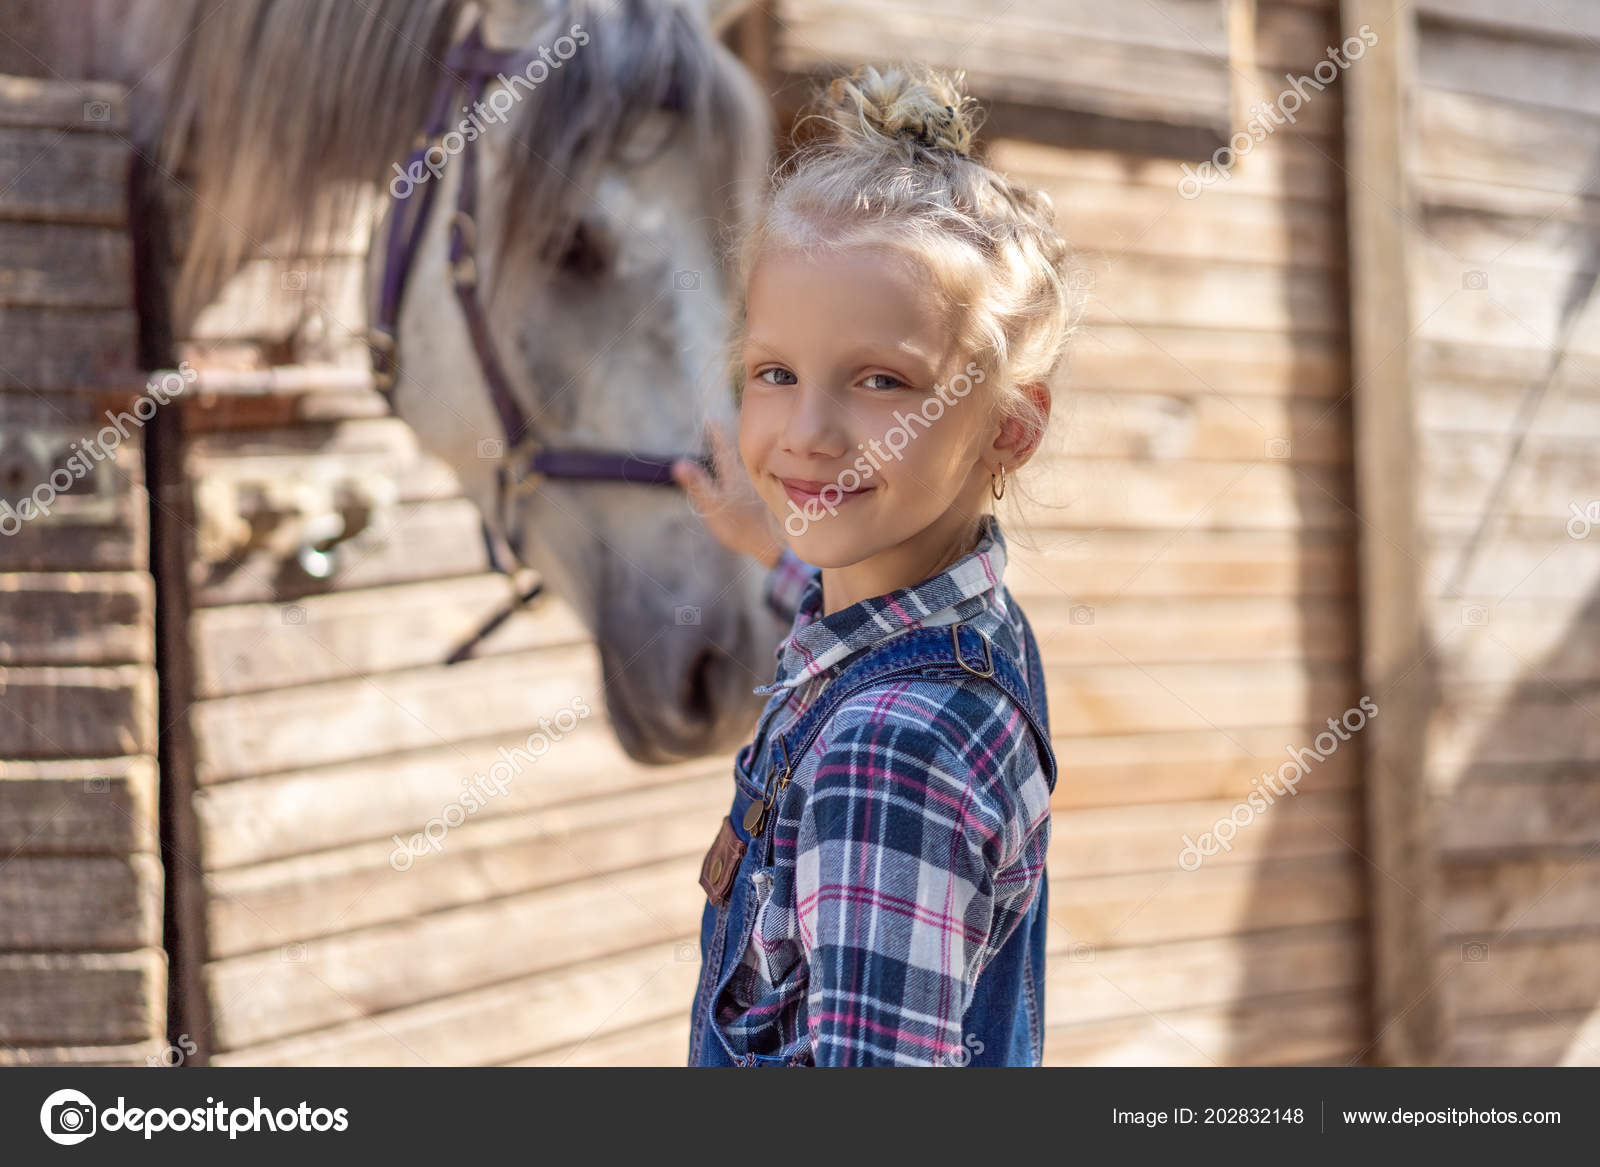 ᐈ Show Me A A Baby Horse Stock Pictures Royalty Free Child Horse Images Download On Depositphotos